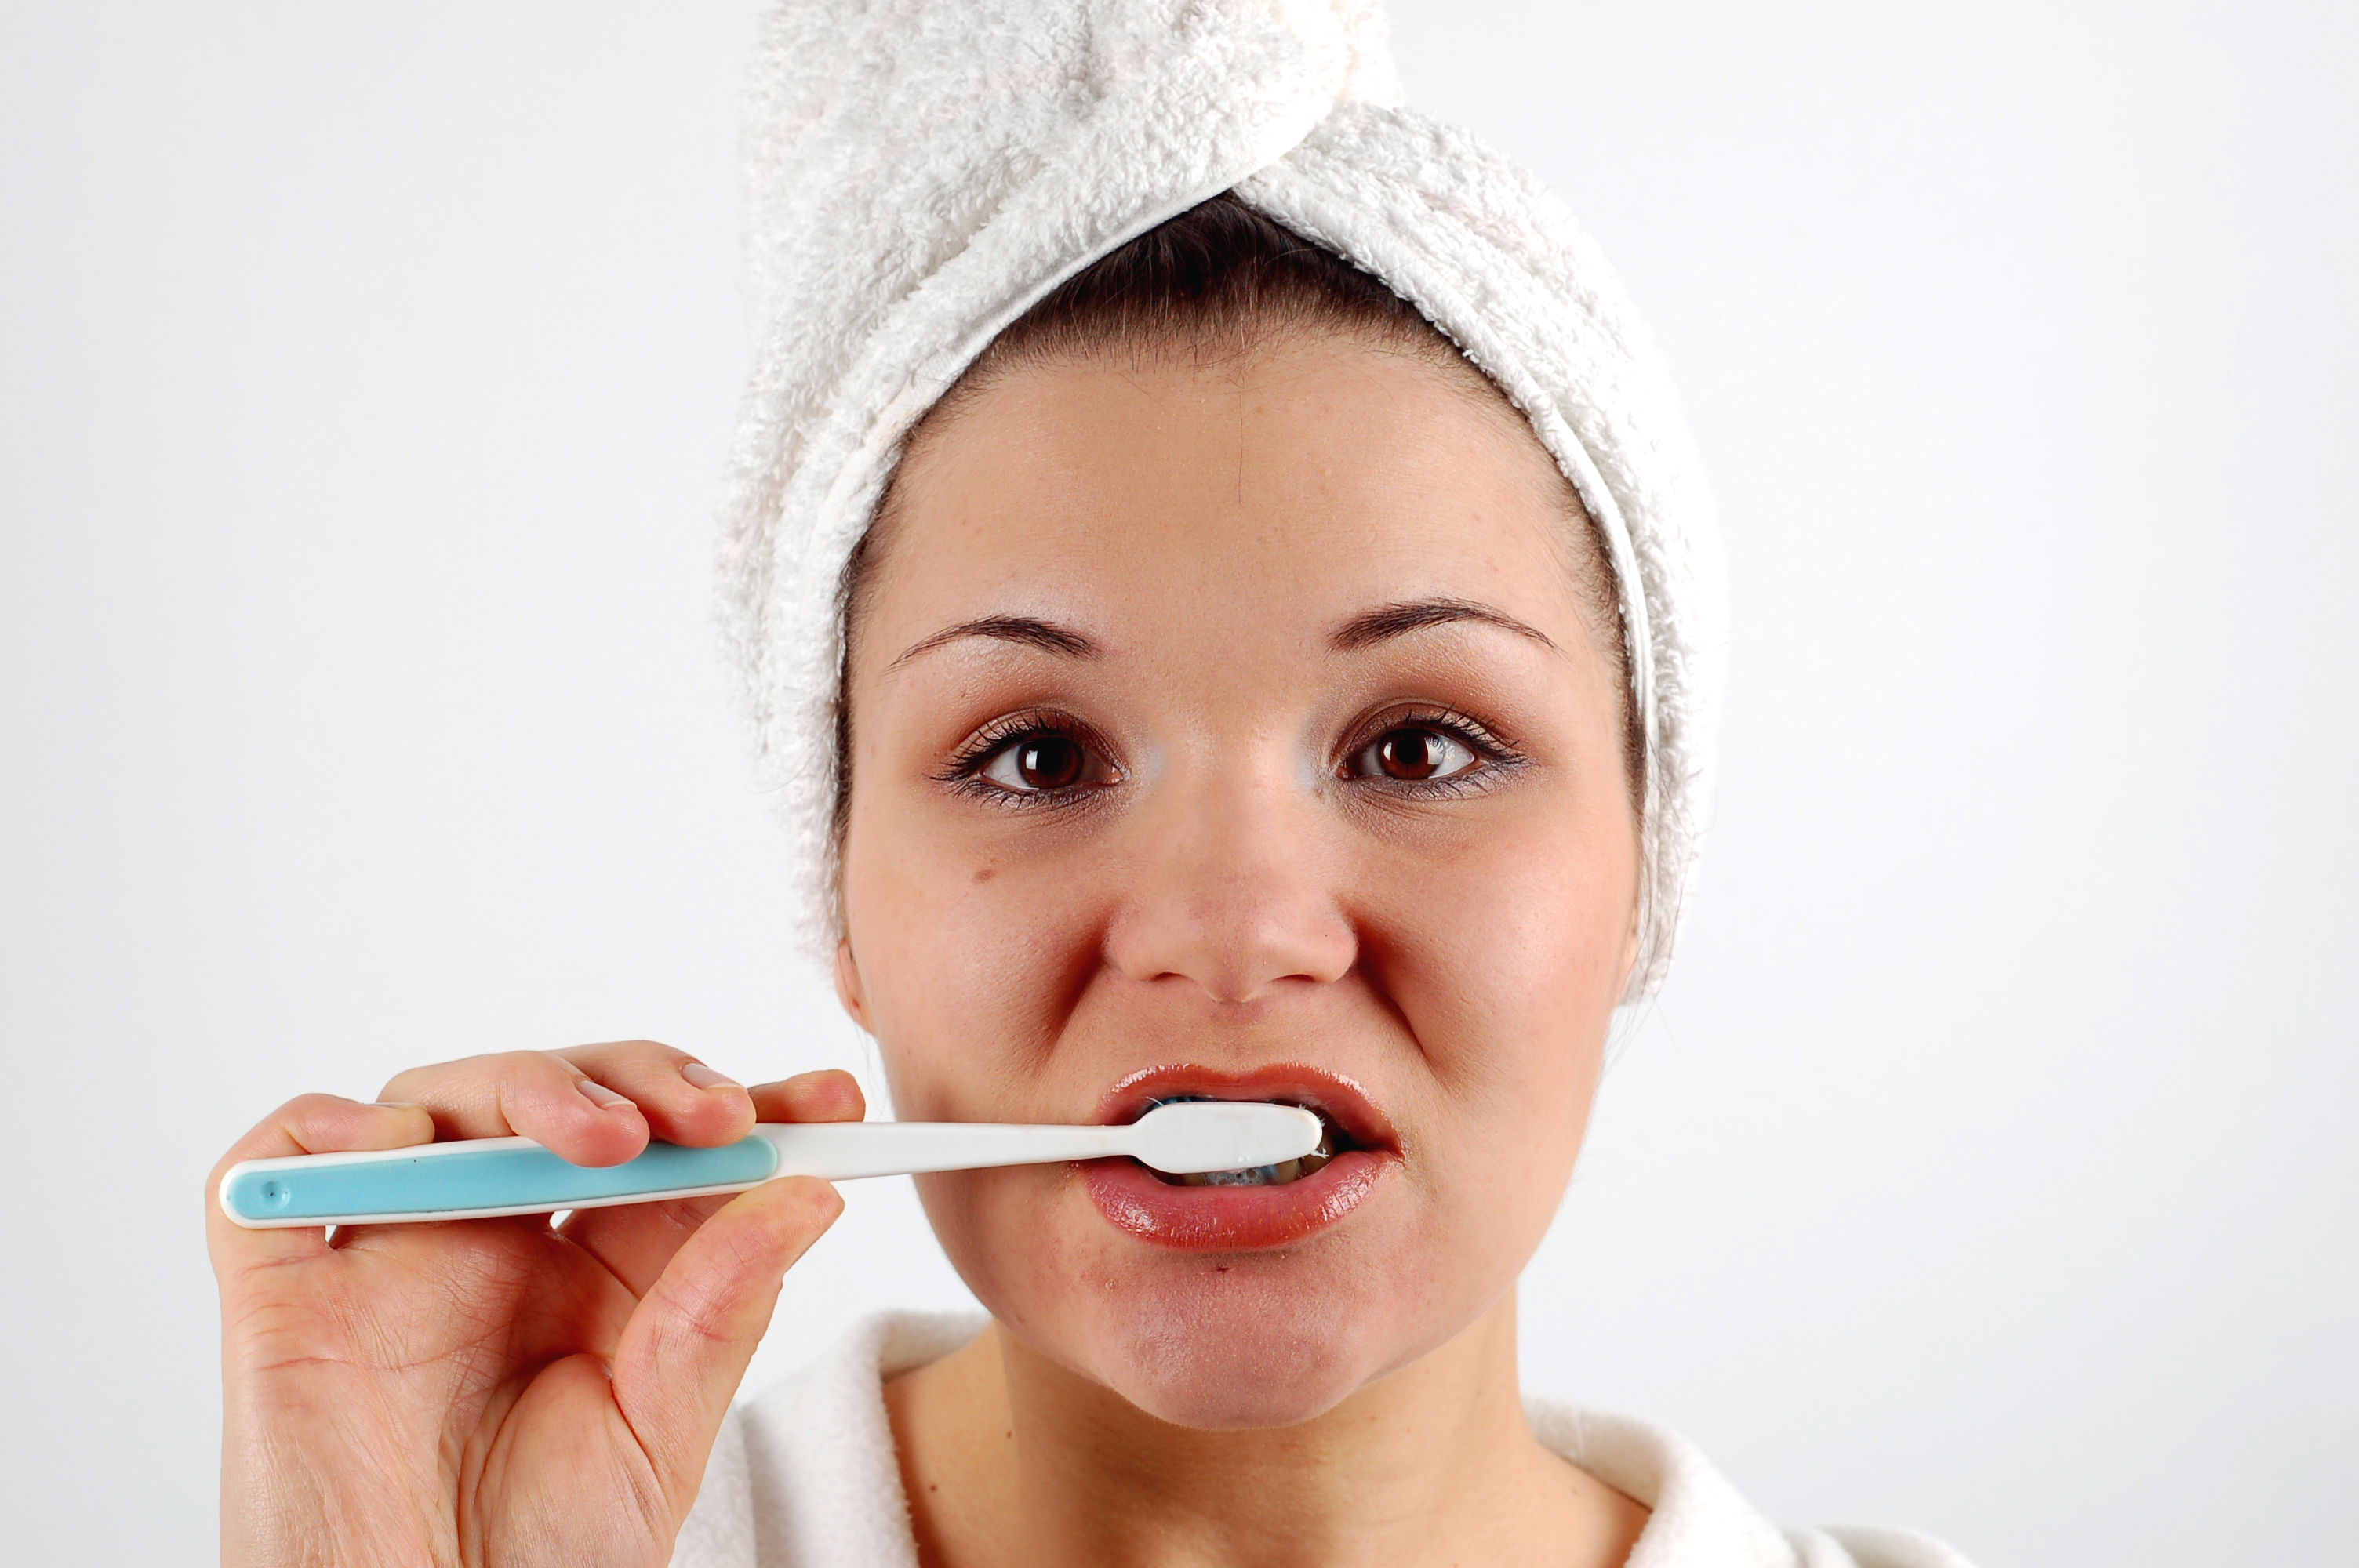 brushing helps prevent gingivitis